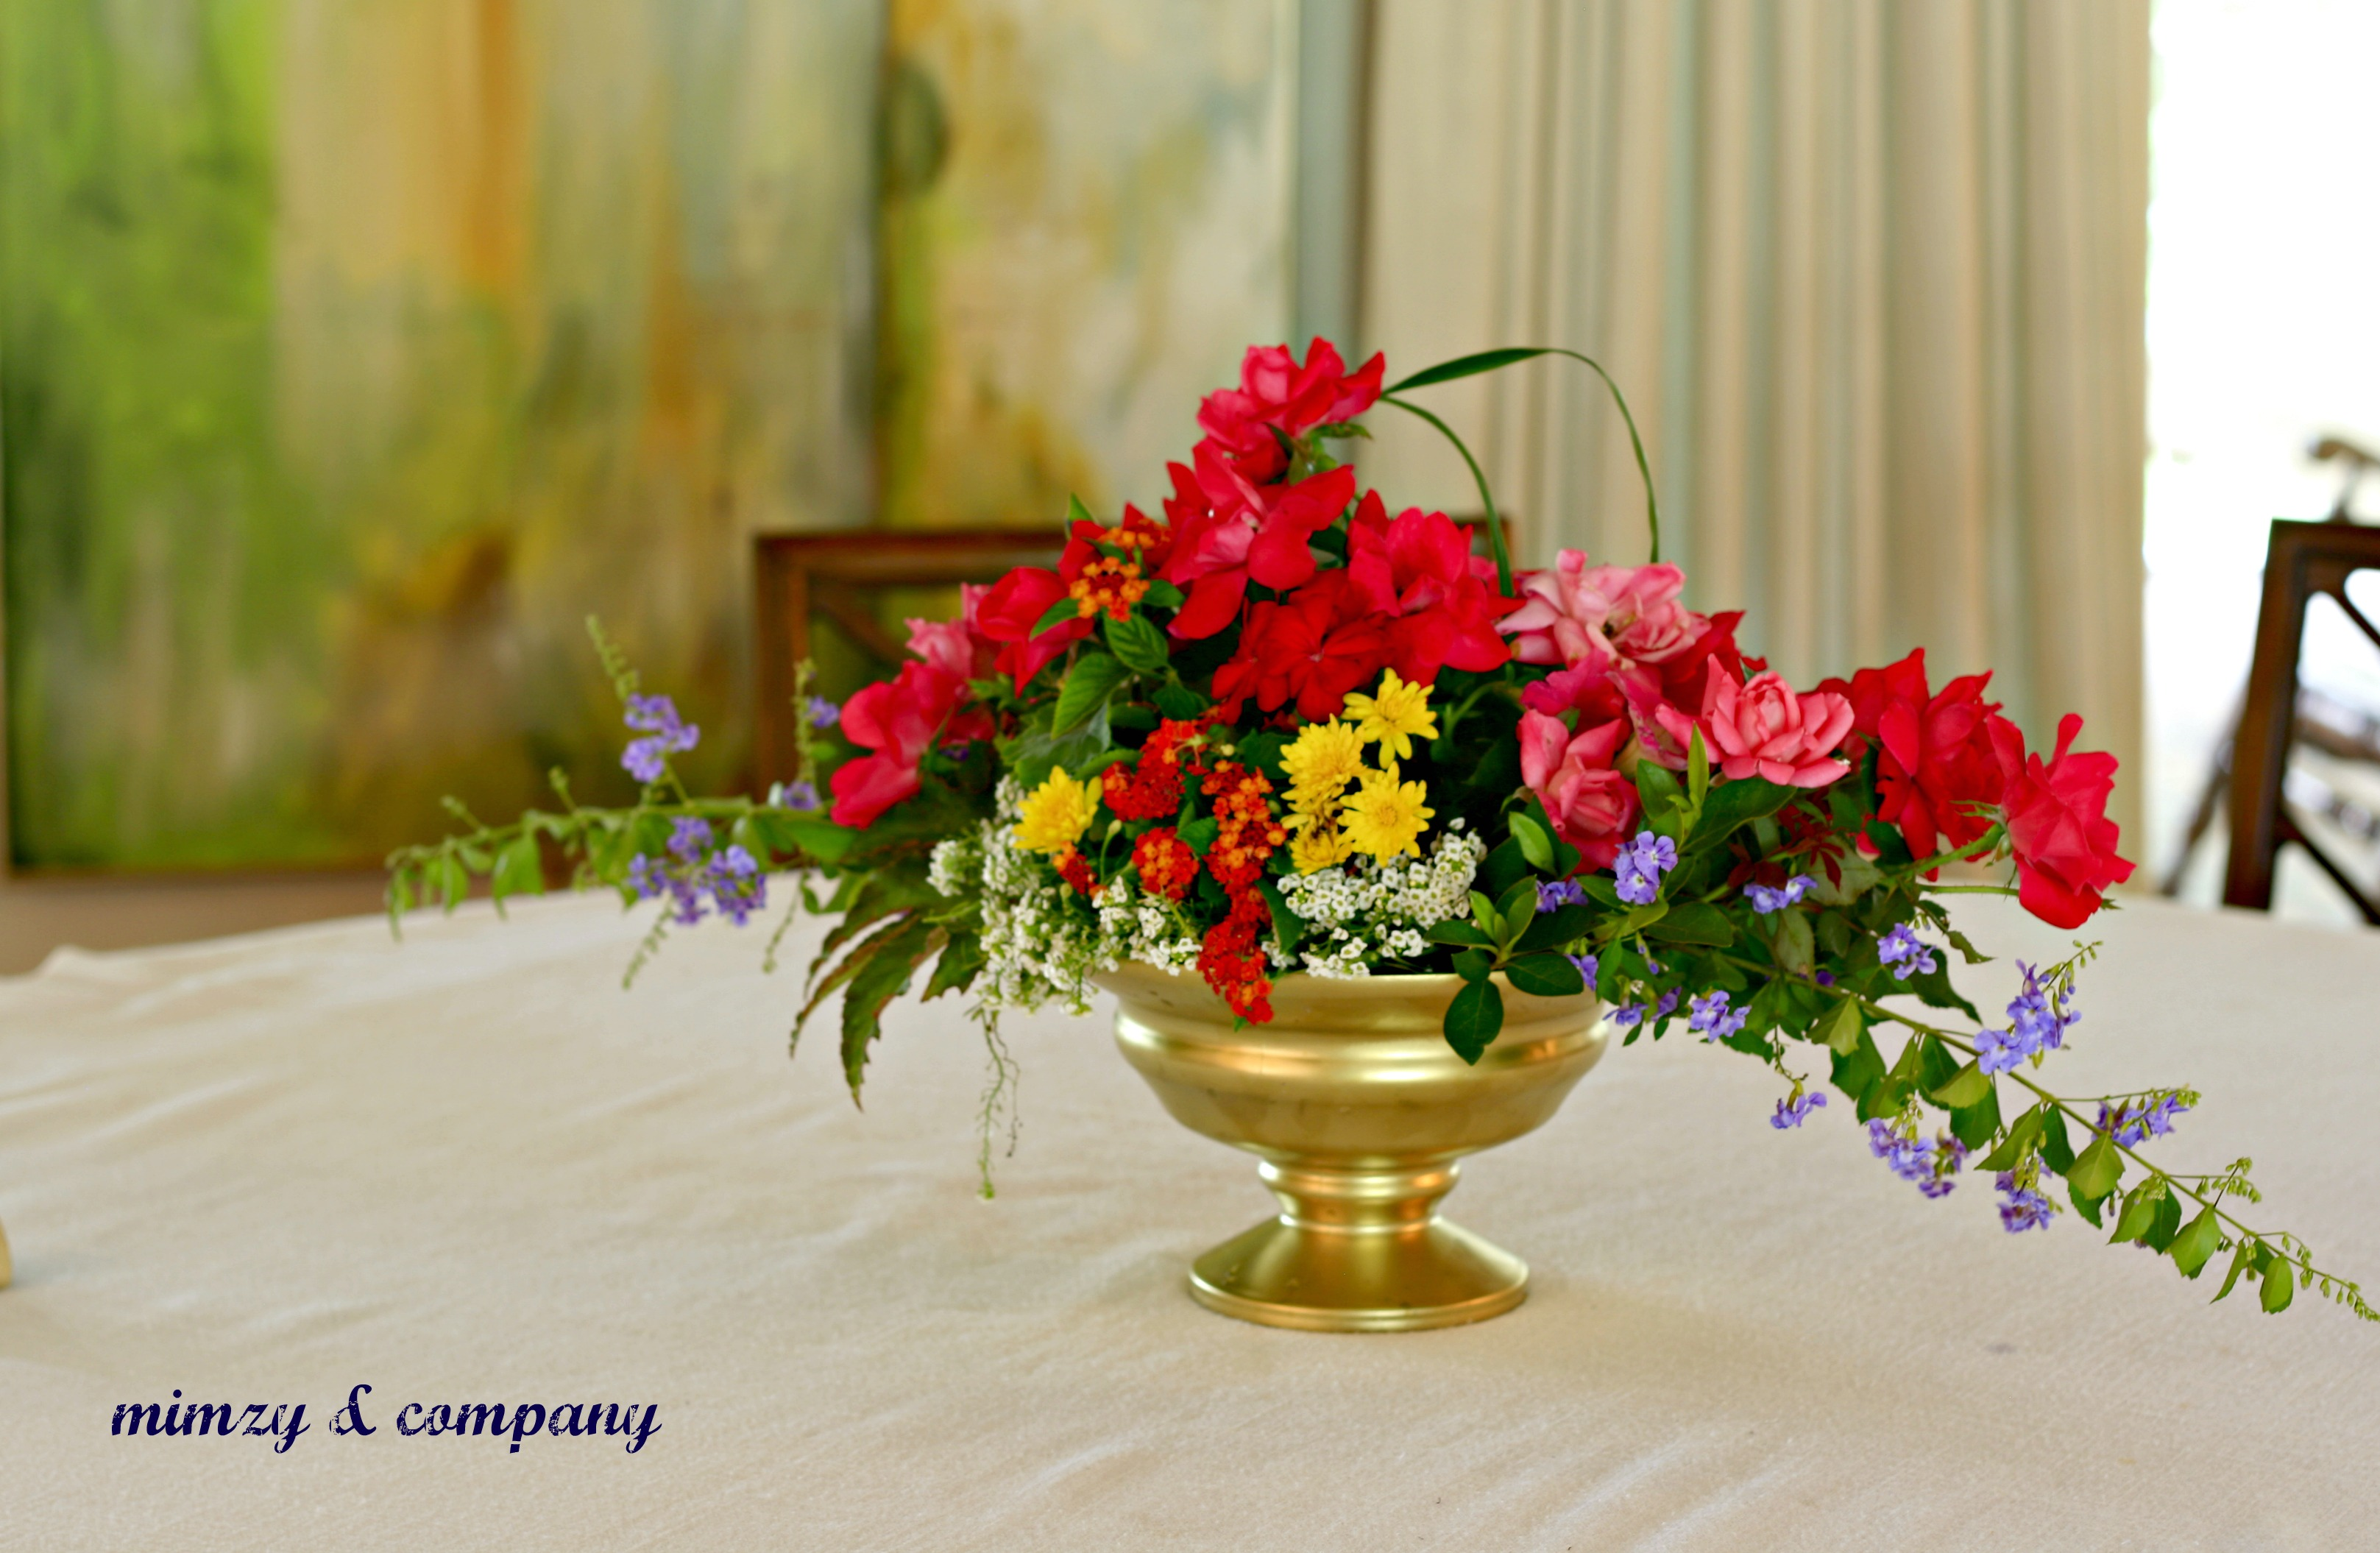 Flower arranging with floral oasis mimzy company for Small fresh flower table arrangements